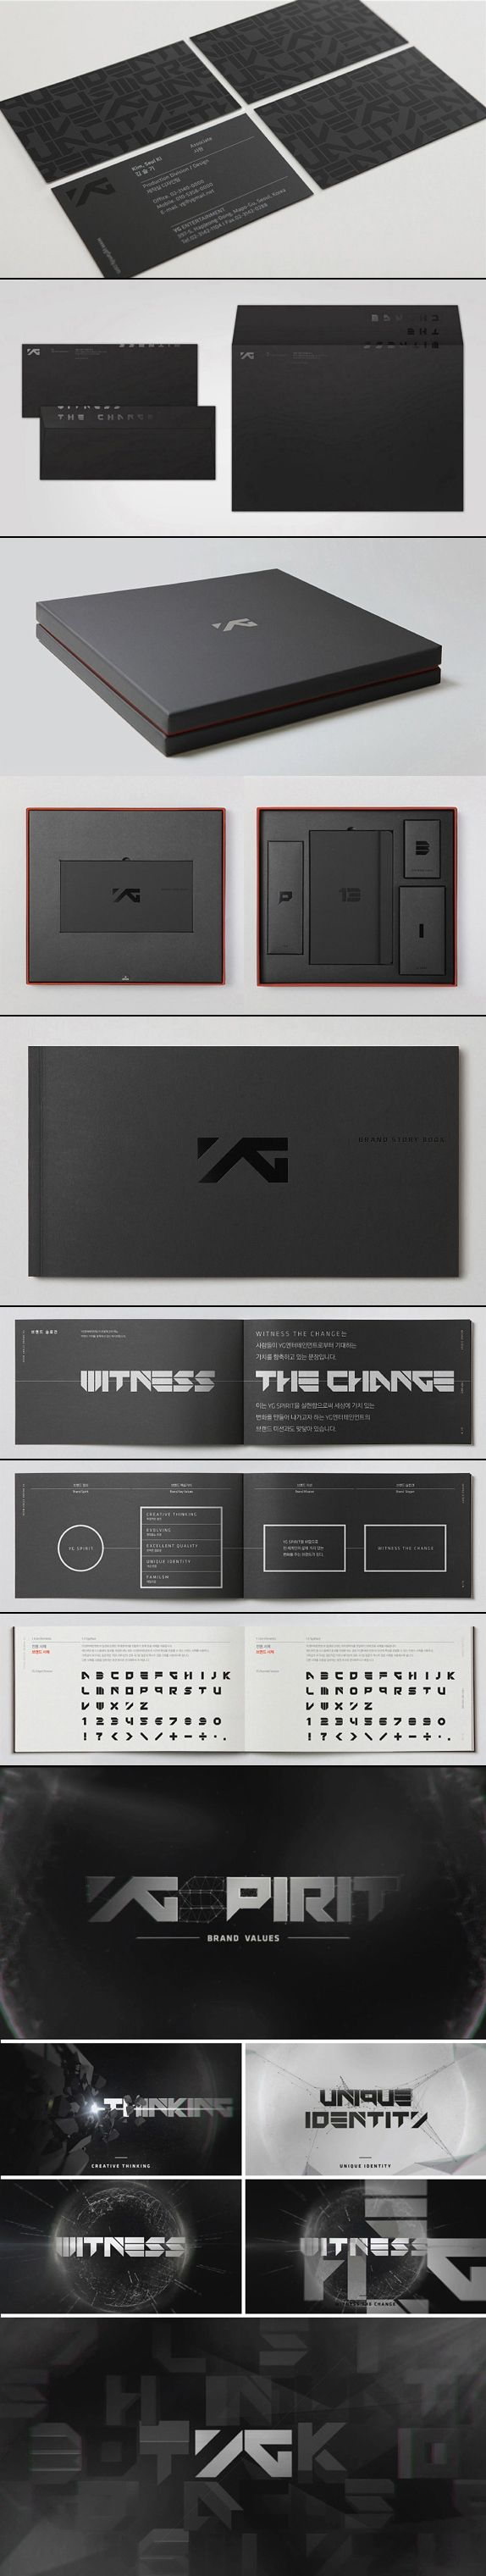 YG Entertainment identity guideline and brand book.